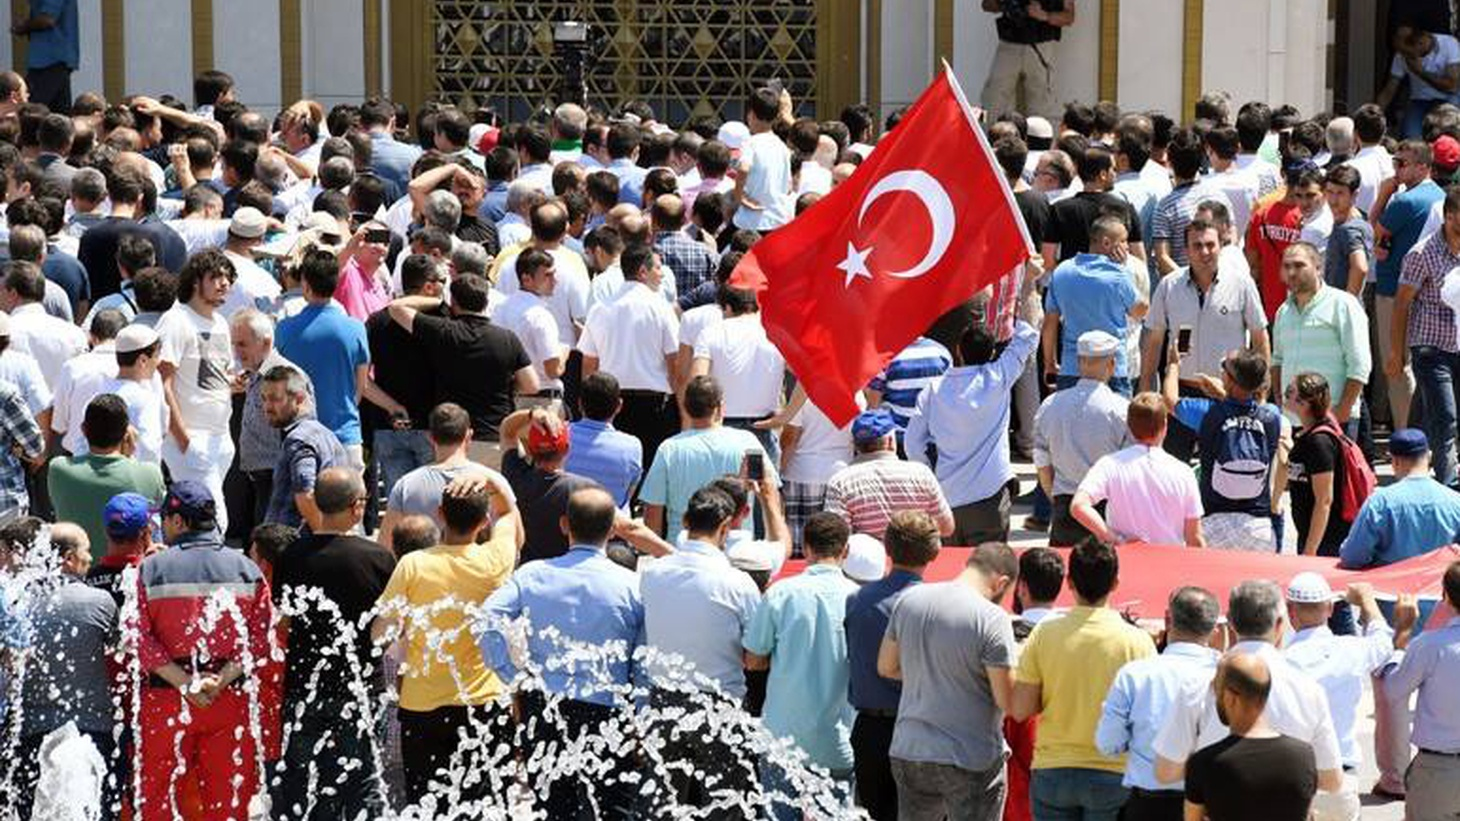 Turkey's crucial role in the Middle East may be changing after the failed coup against President Erdogan. The team sent to assassinate him hasn't been found yet. We hear about potential repercussions for NATO and the United States.